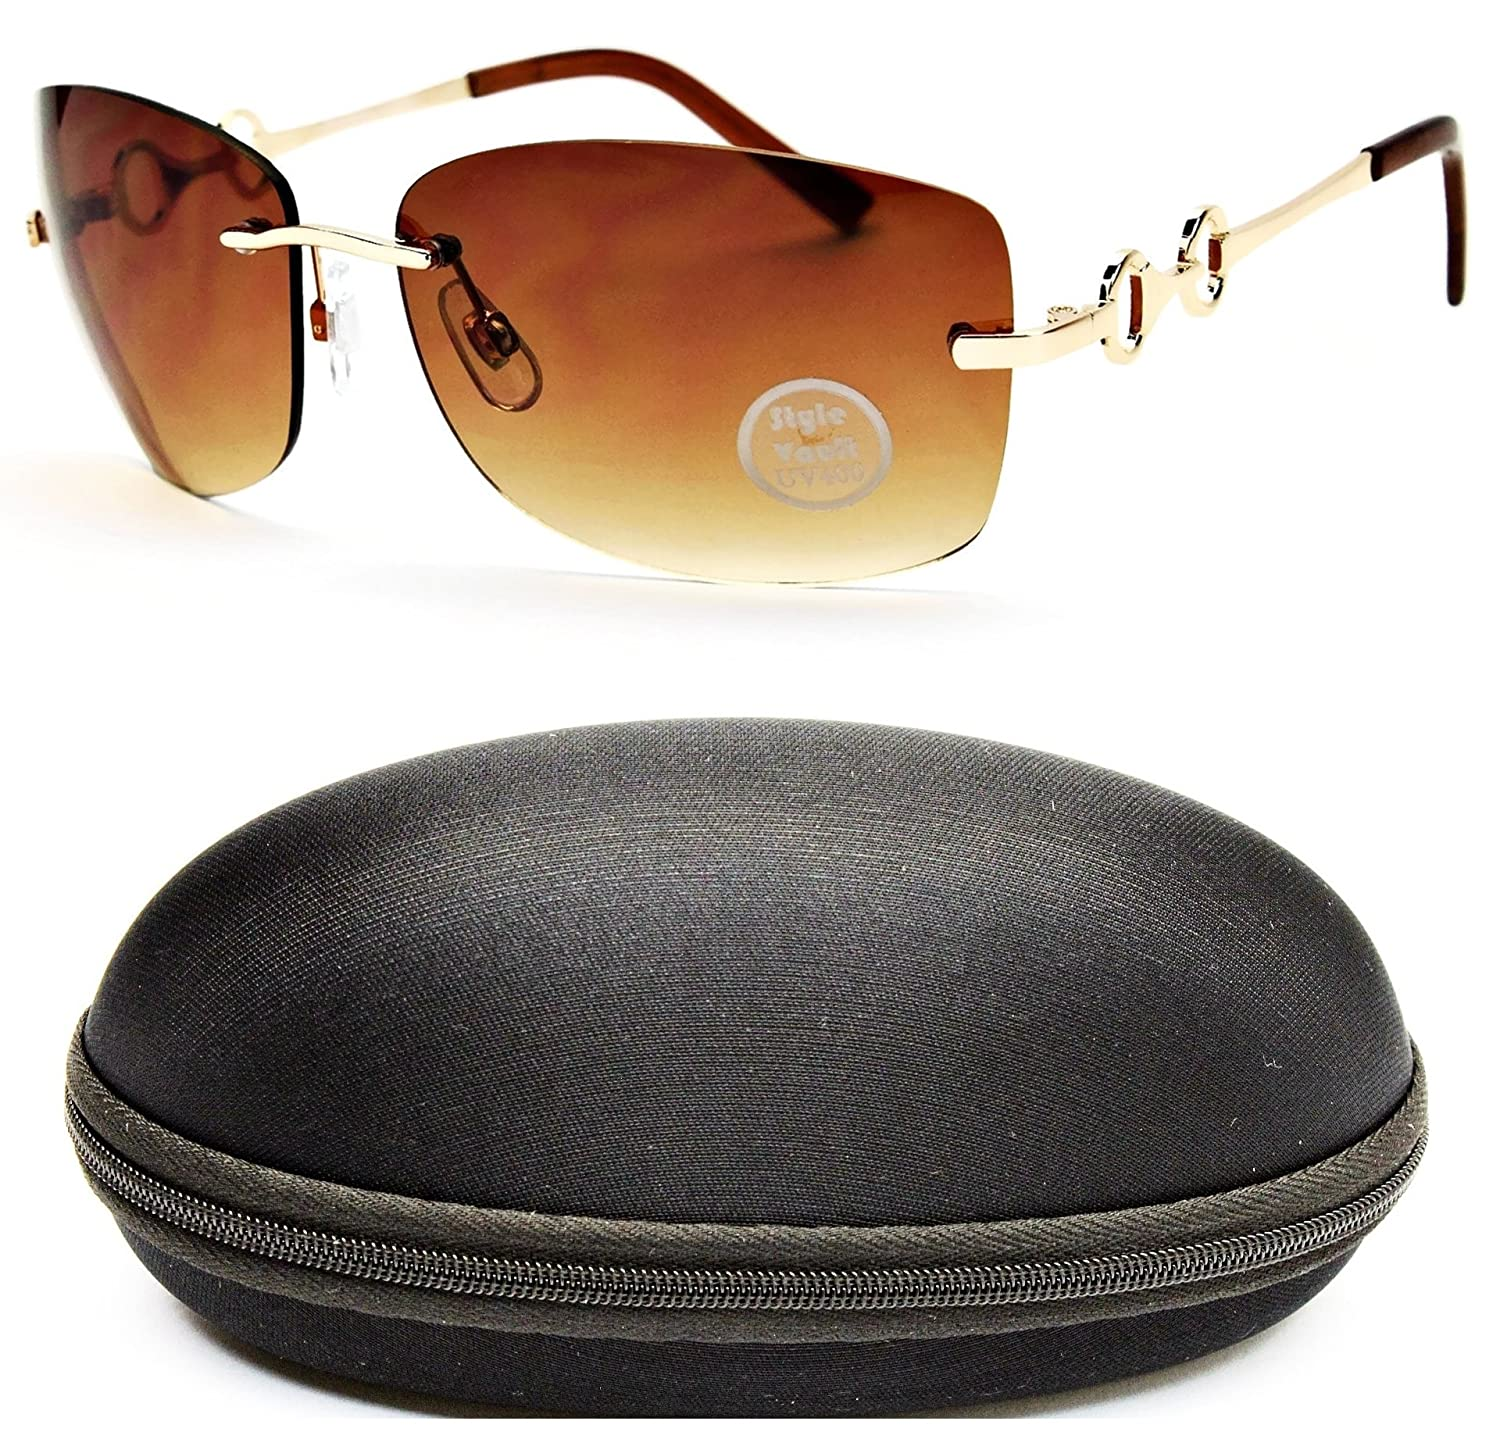 D682-cc Style Vault Shield Rimless Sunglasses